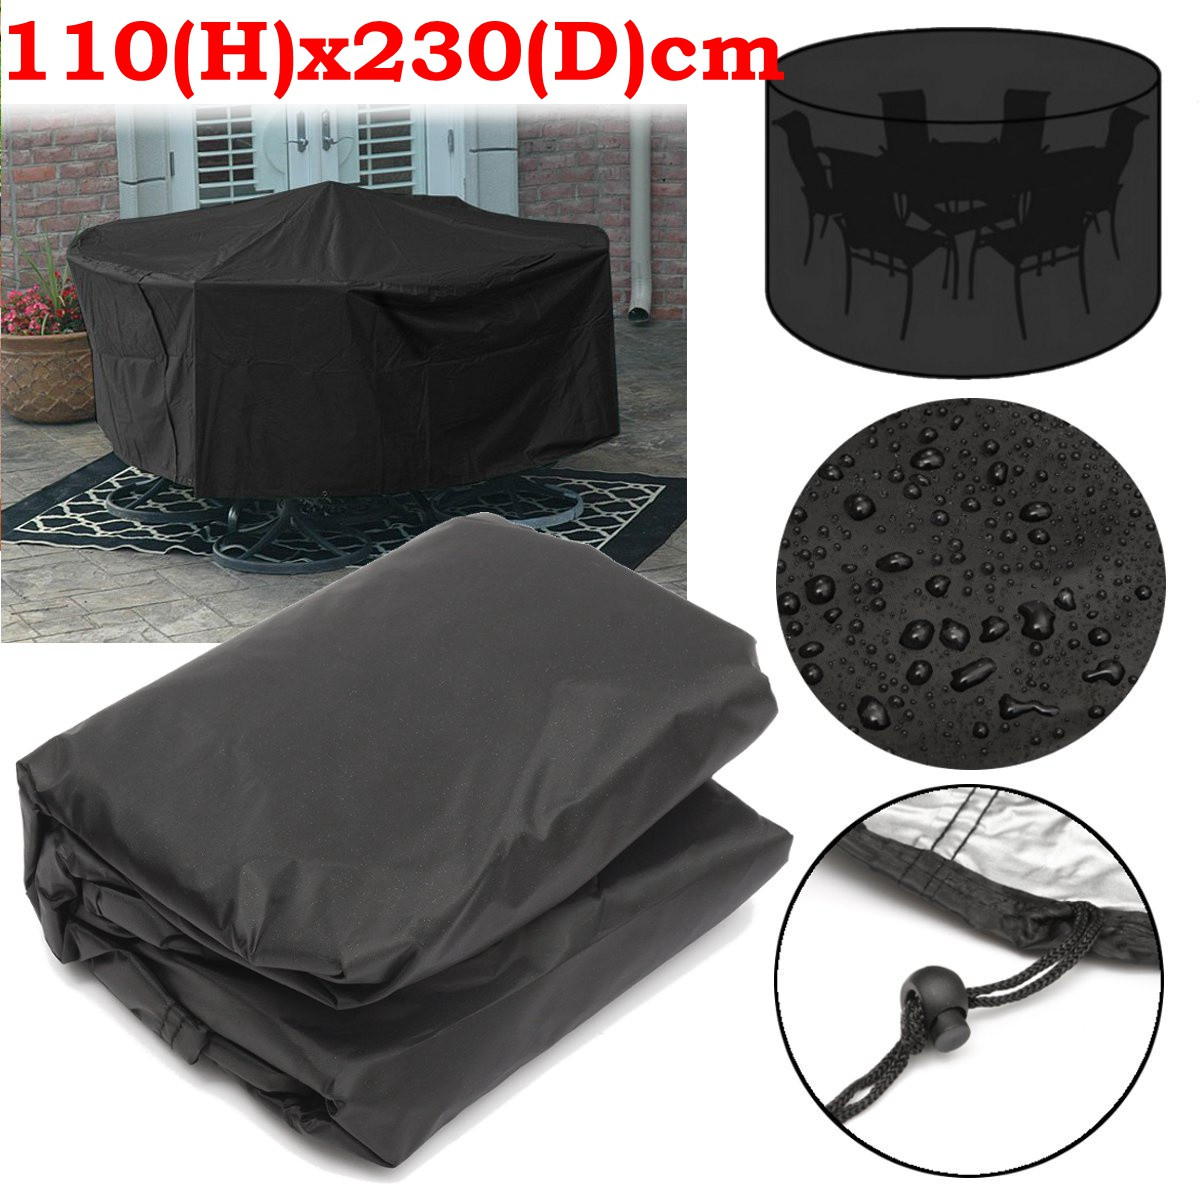 Furniture Dust Cover Fabric: 110x230cm Round Outdoor Garden Patio Furniture Cover